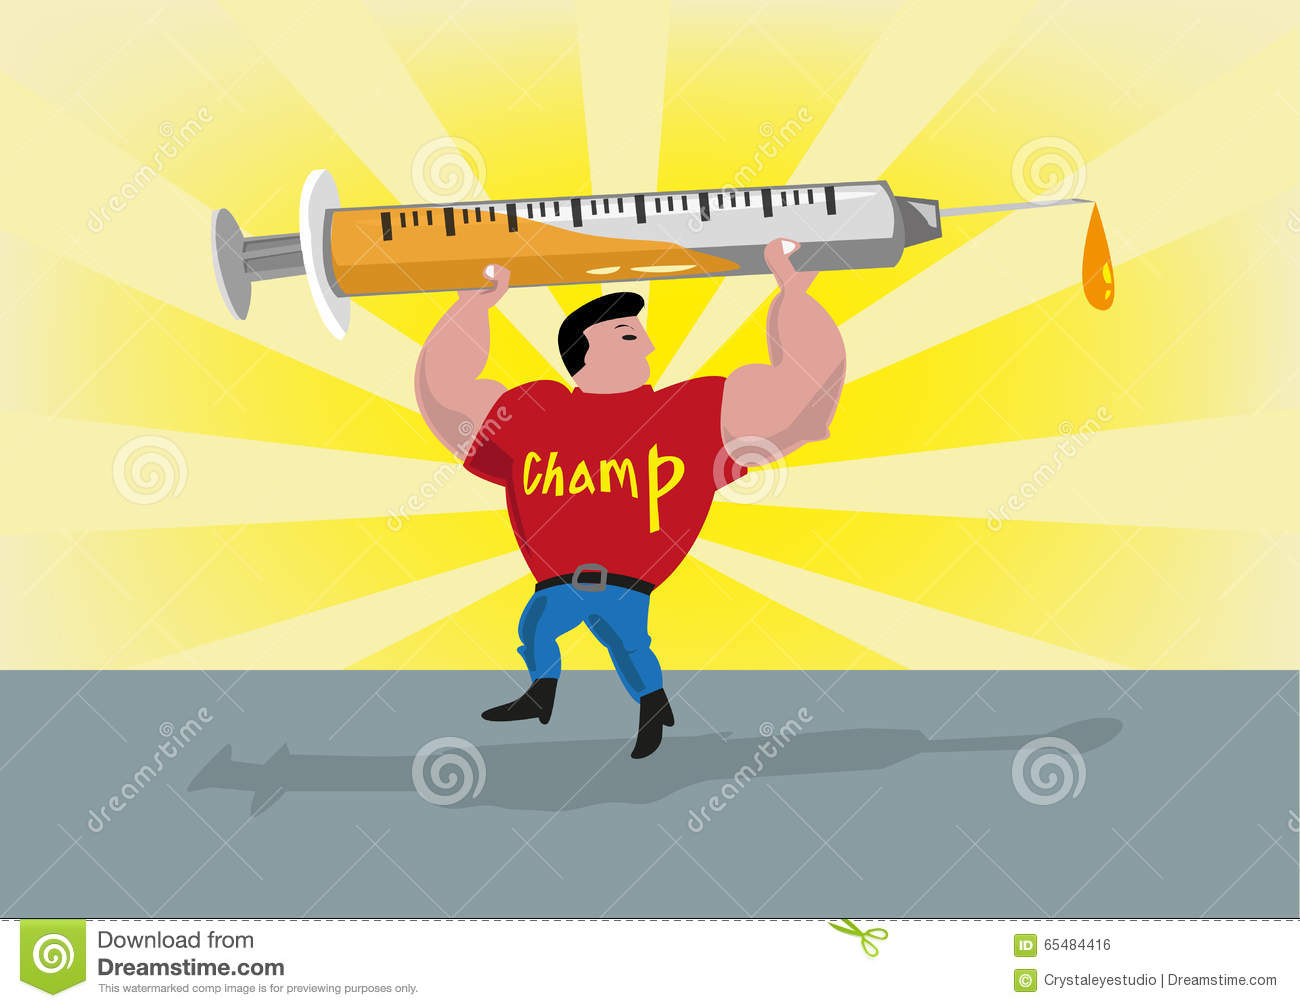 Athlete Lifts Up A Syringe. Doping Conce-Athlete Lifts Up a Syringe. Doping Concept. Editable Clip Art. Royalty Free Stock-0